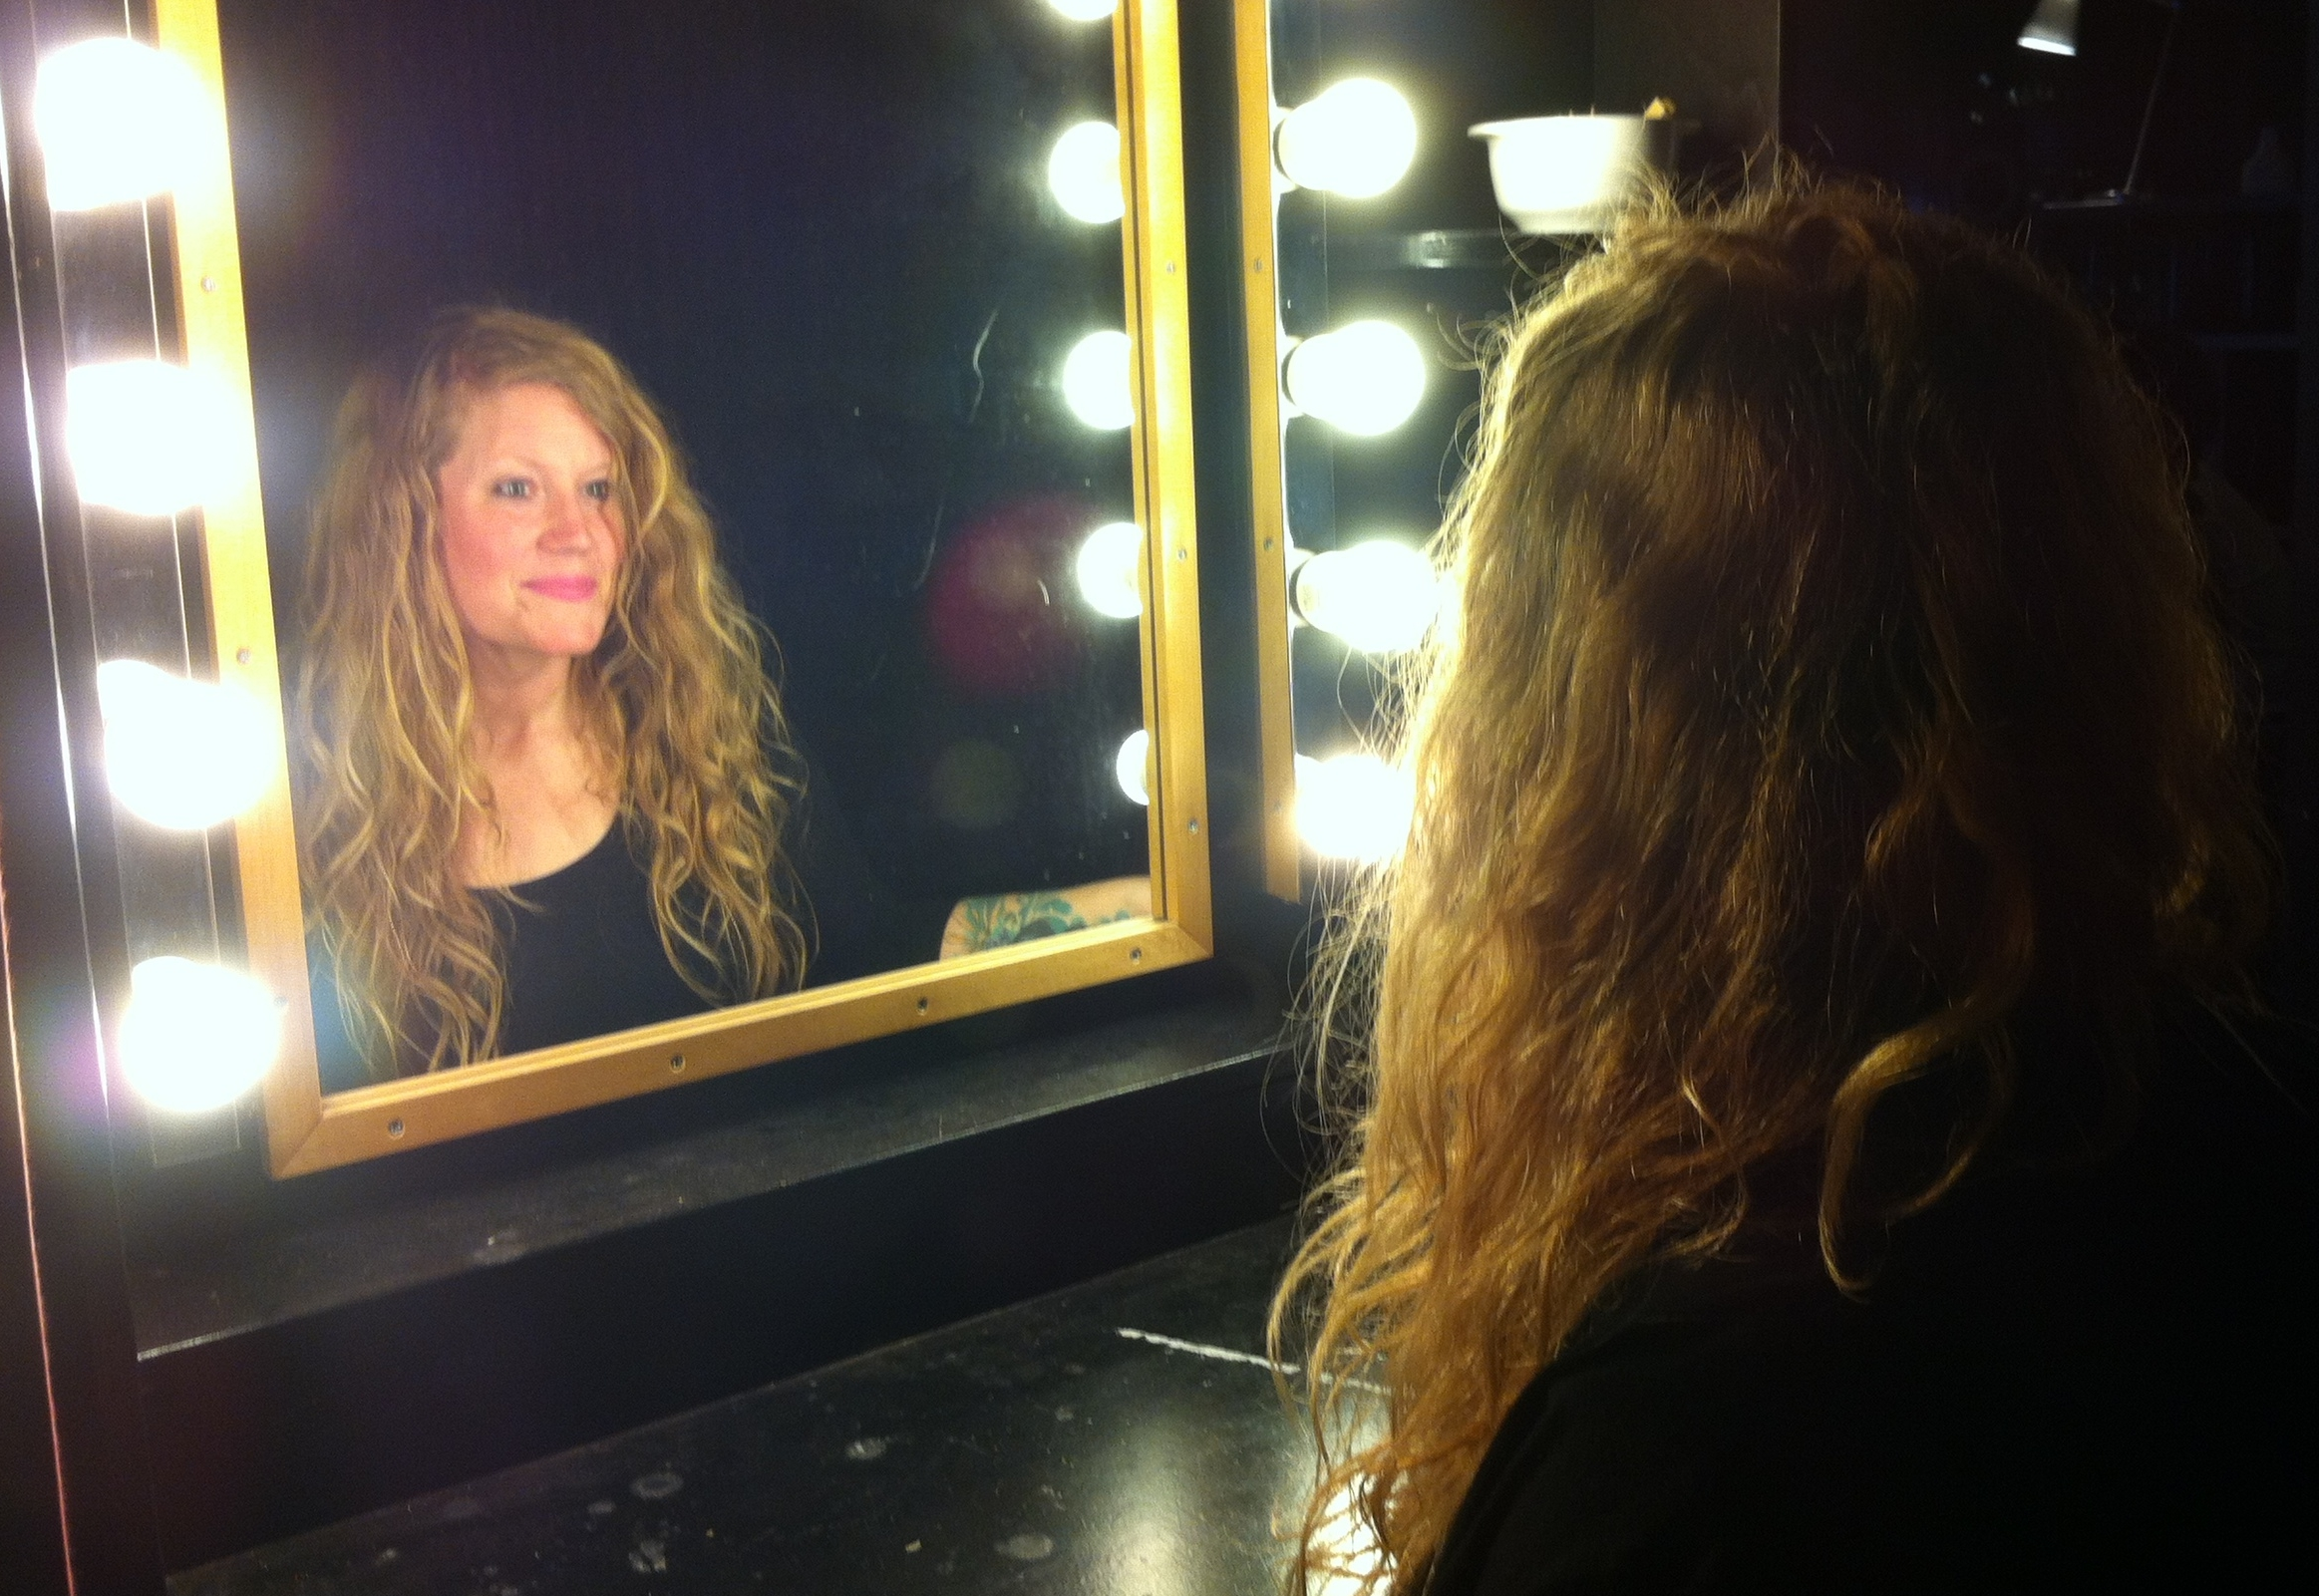 A_refelction_of_Lindsay_in_a_mirror_surrounded_by_lights